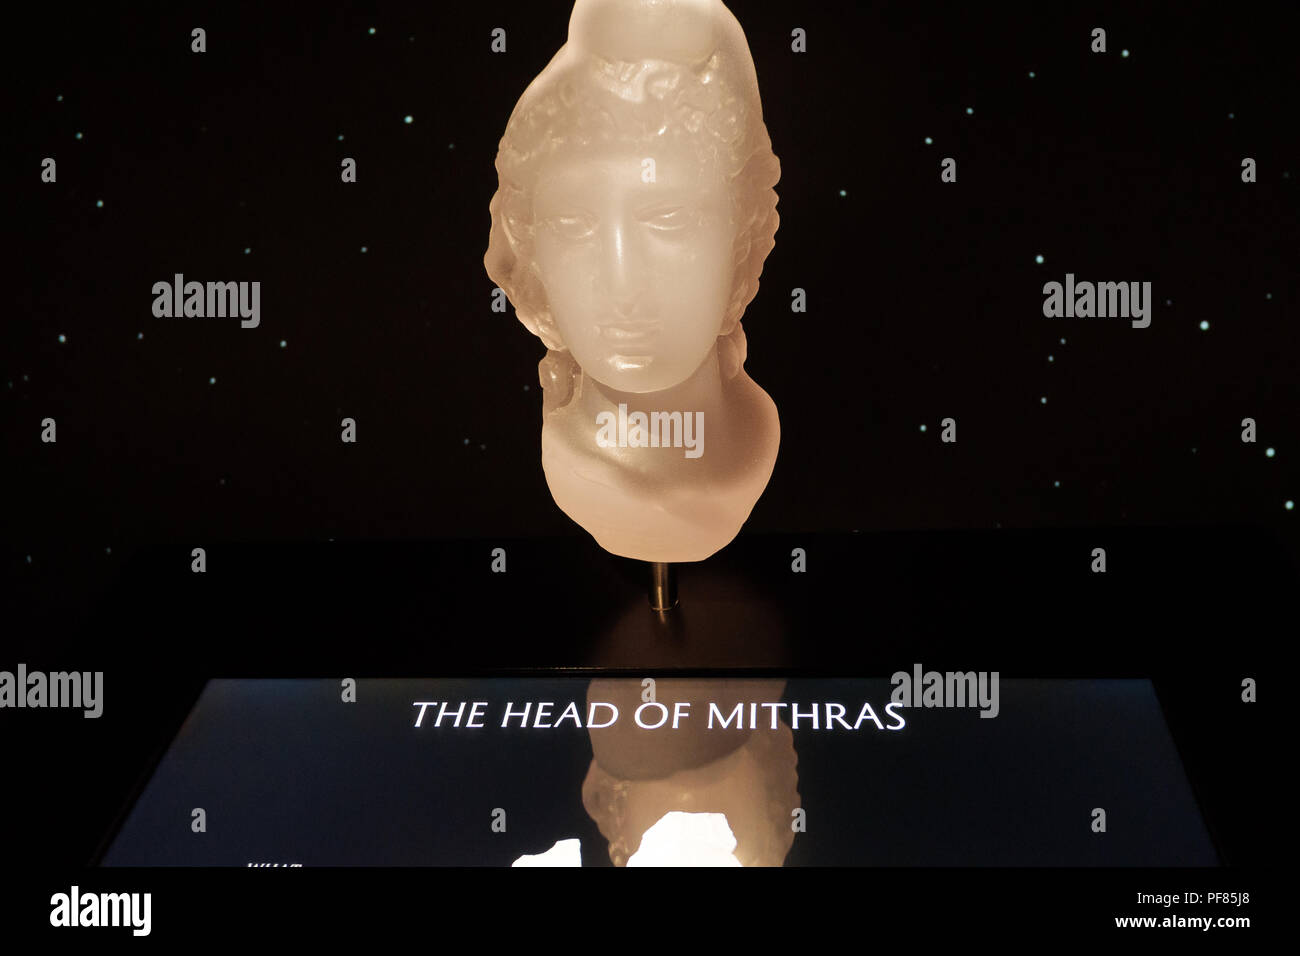 Reconstructed Head of Mithras wearing a Phrygian Cap, based on that found in the Temple at the London Mithraeum, City of London. - Stock Image